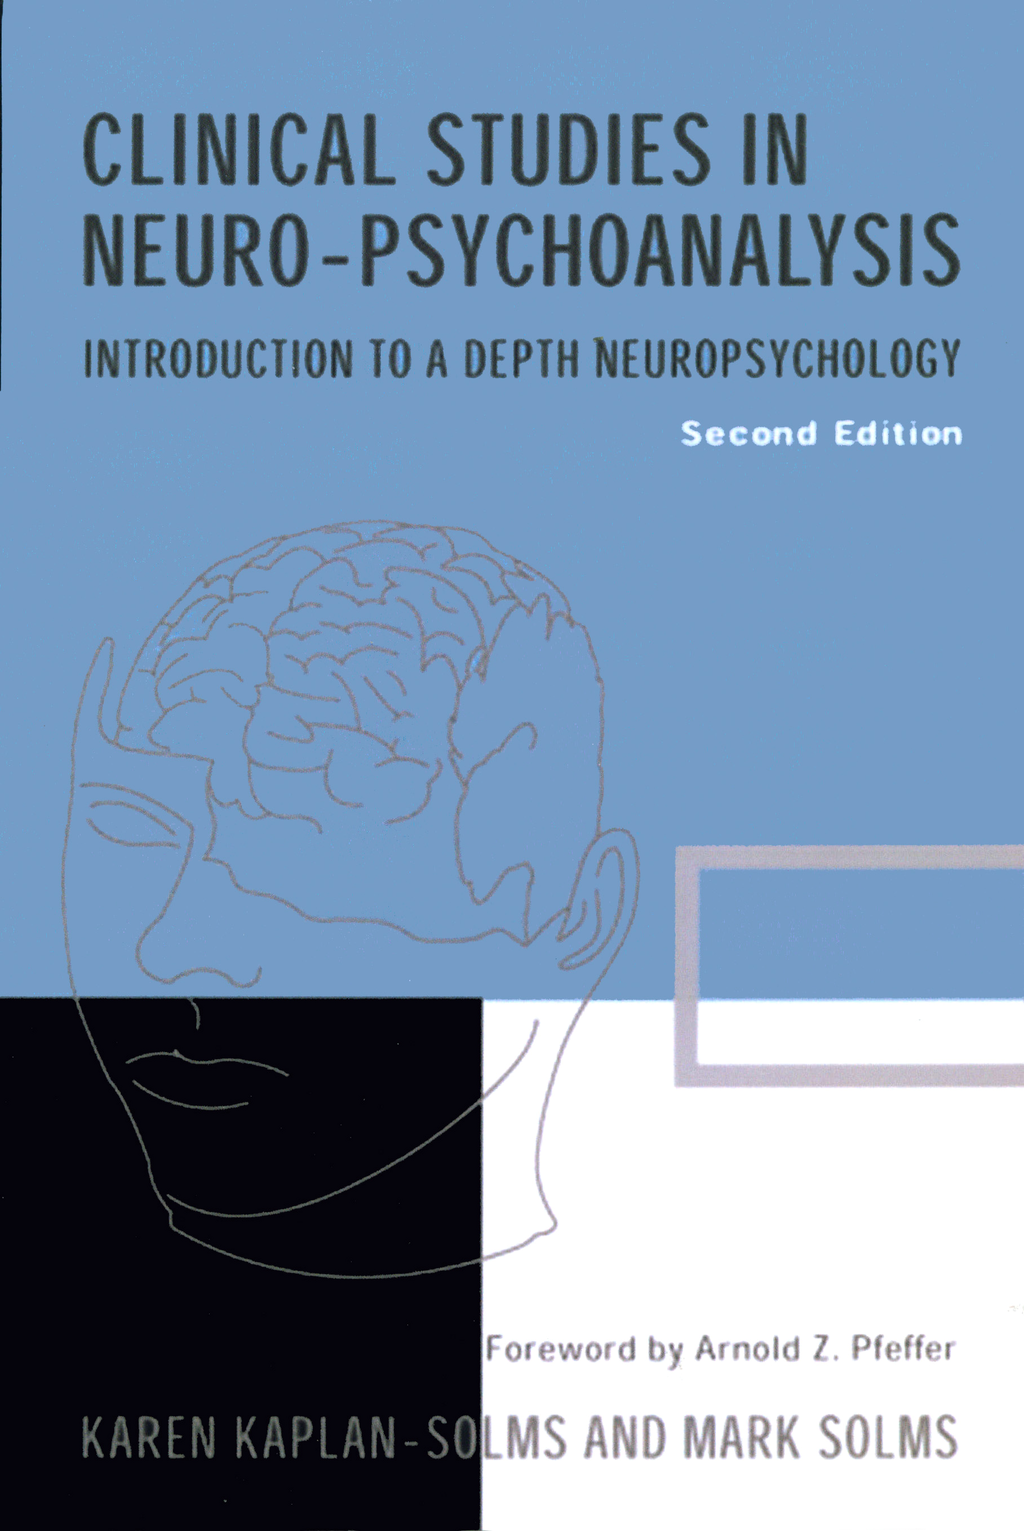 Clinical Studies in Neuro-psychoanalysis: Introduction to a Depth Neuropsychology